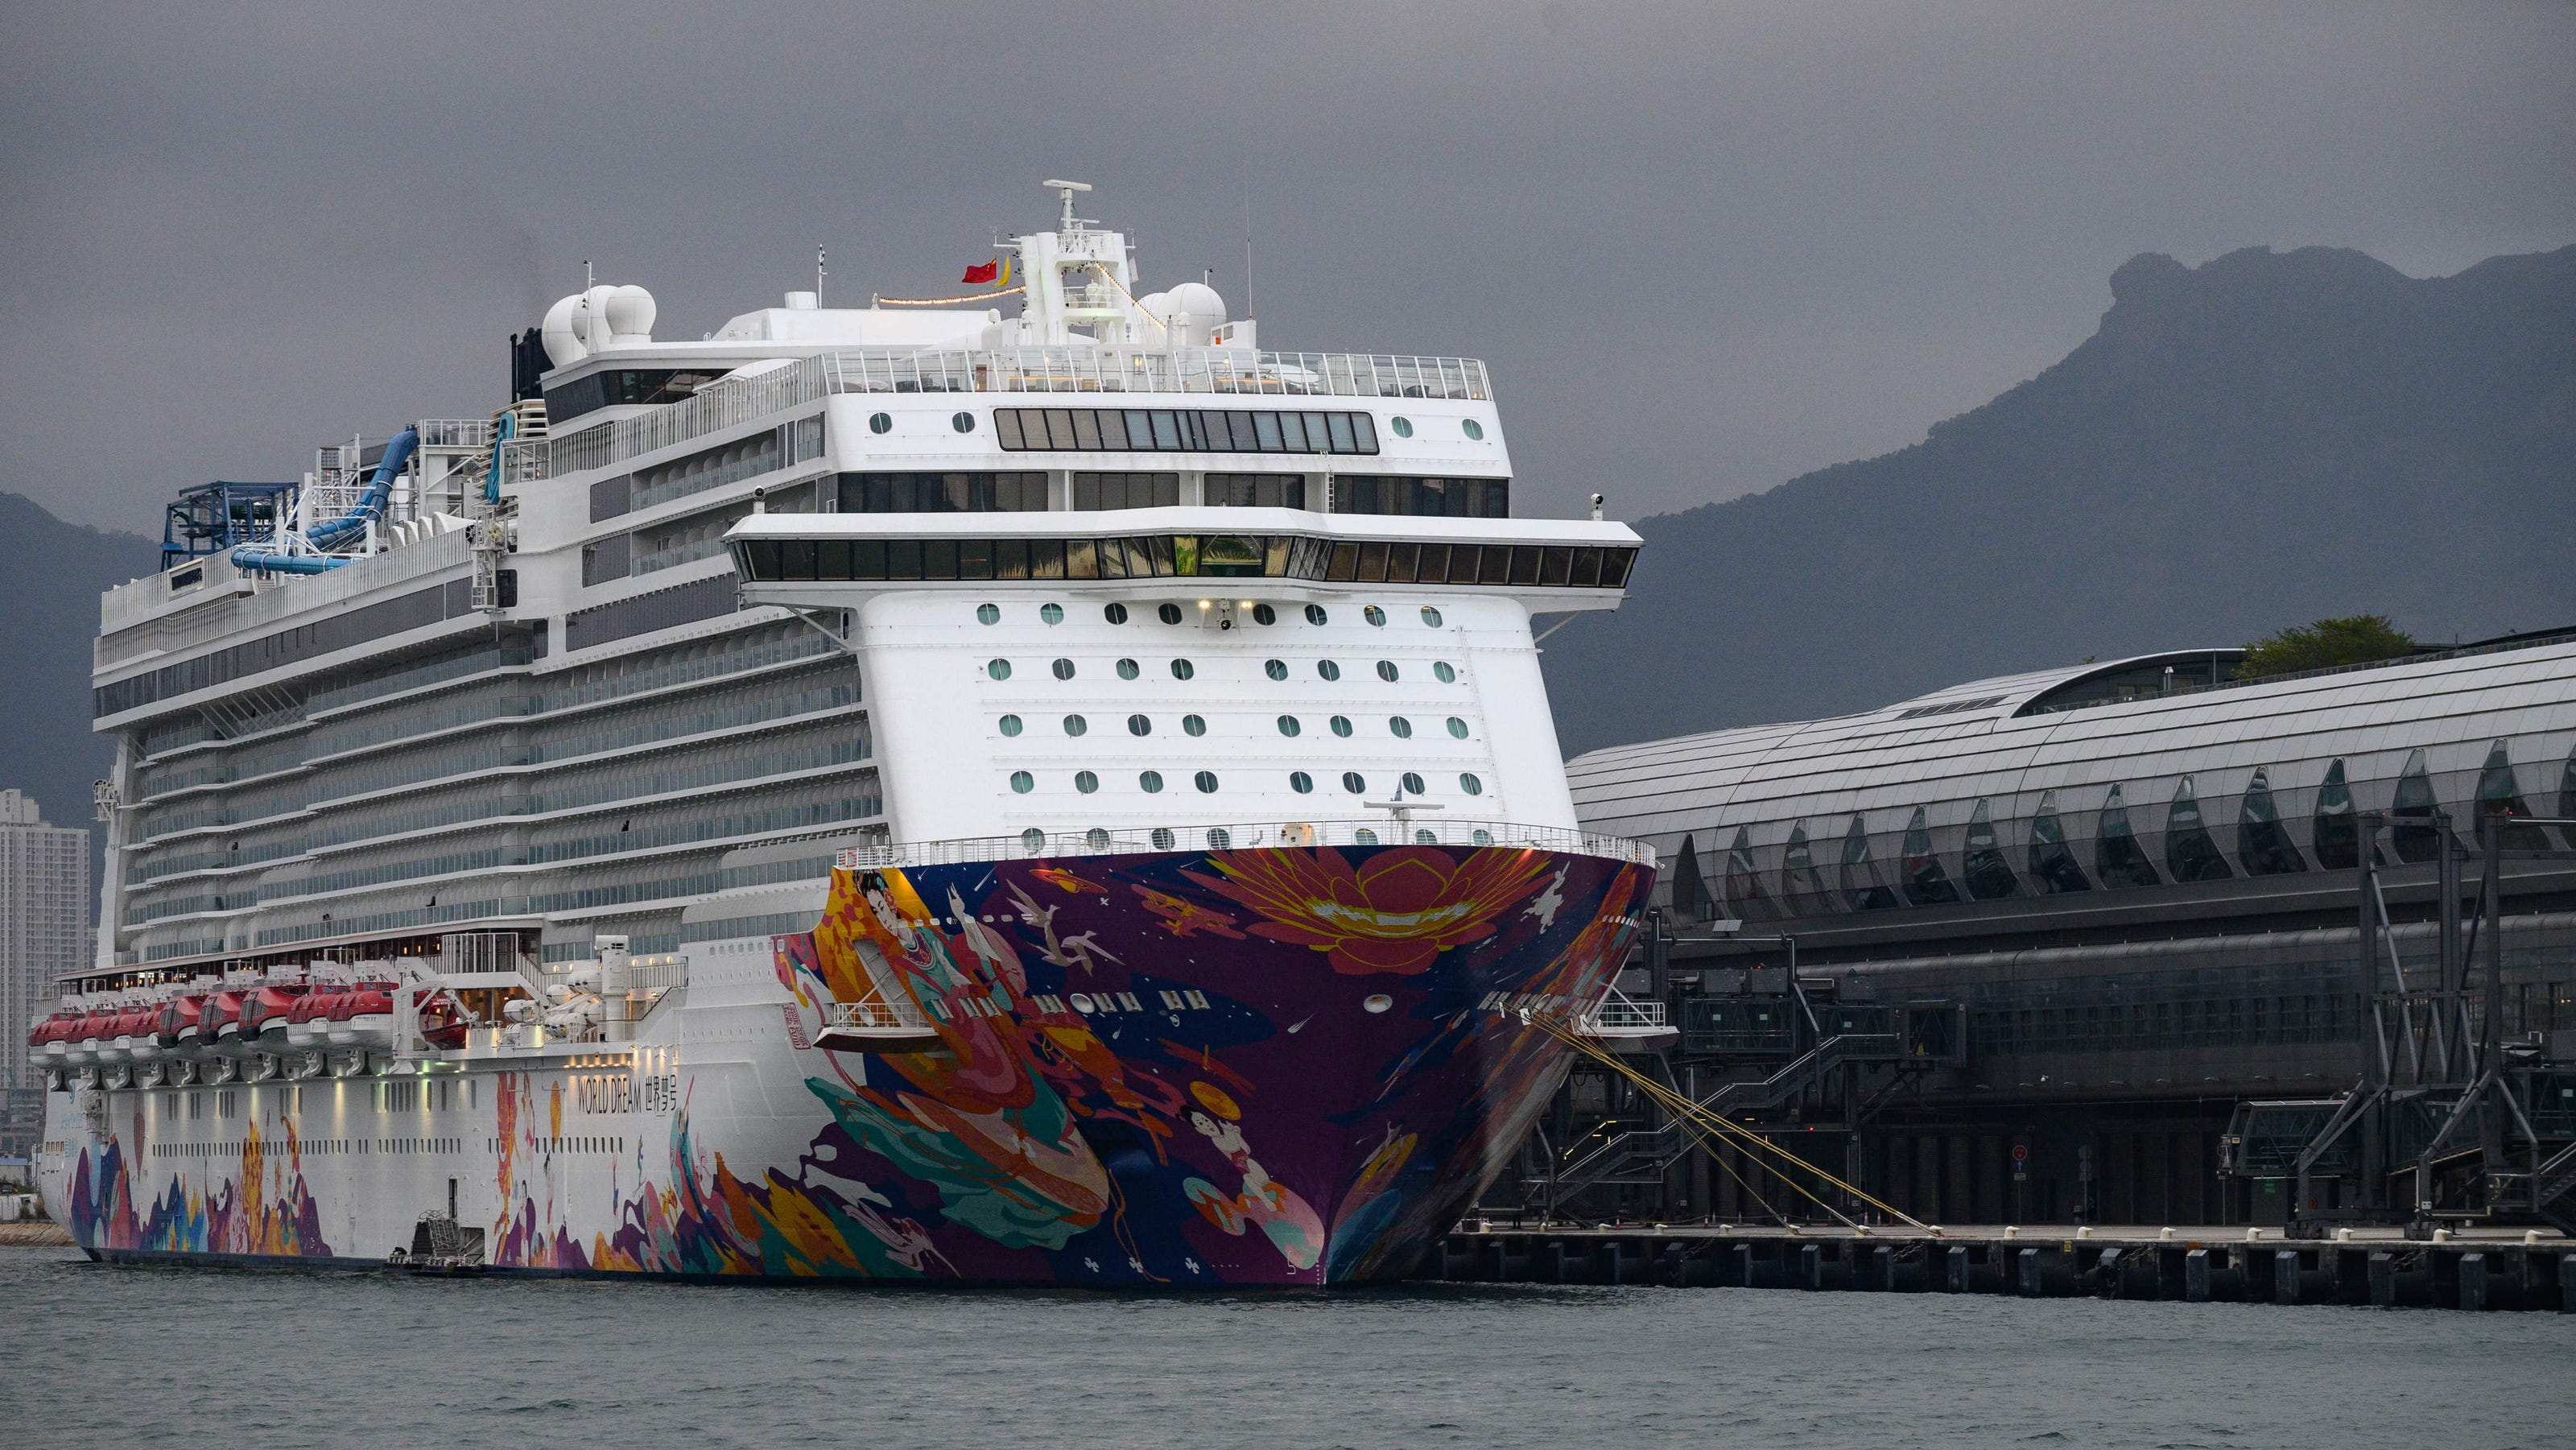 Coronavirus Dream Cruises Passengers Tested After 3 Confirmed Cases